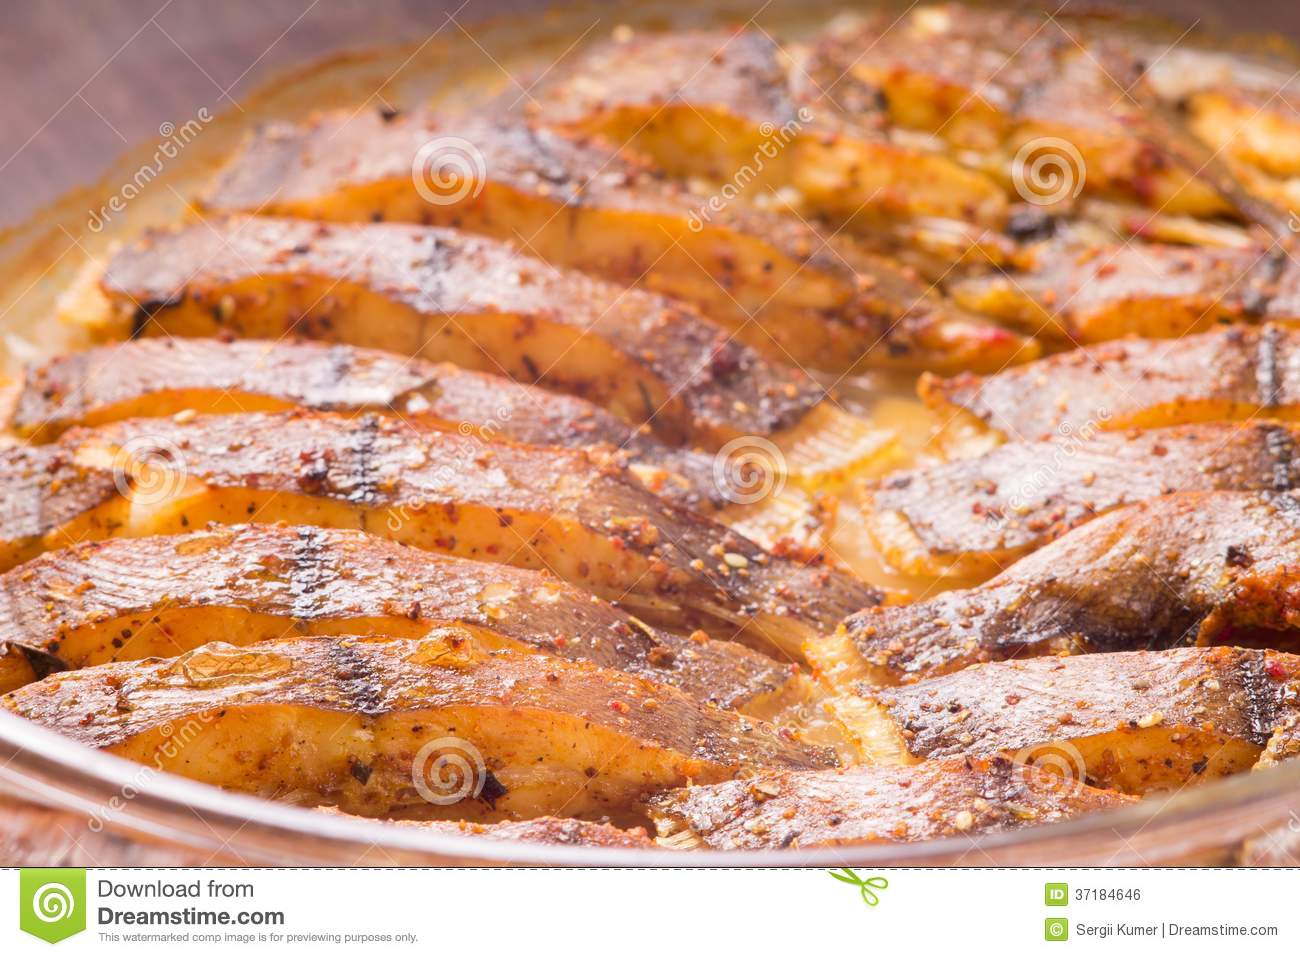 Cooked fish with spices royalty free stock image image for Baked fish seasoning